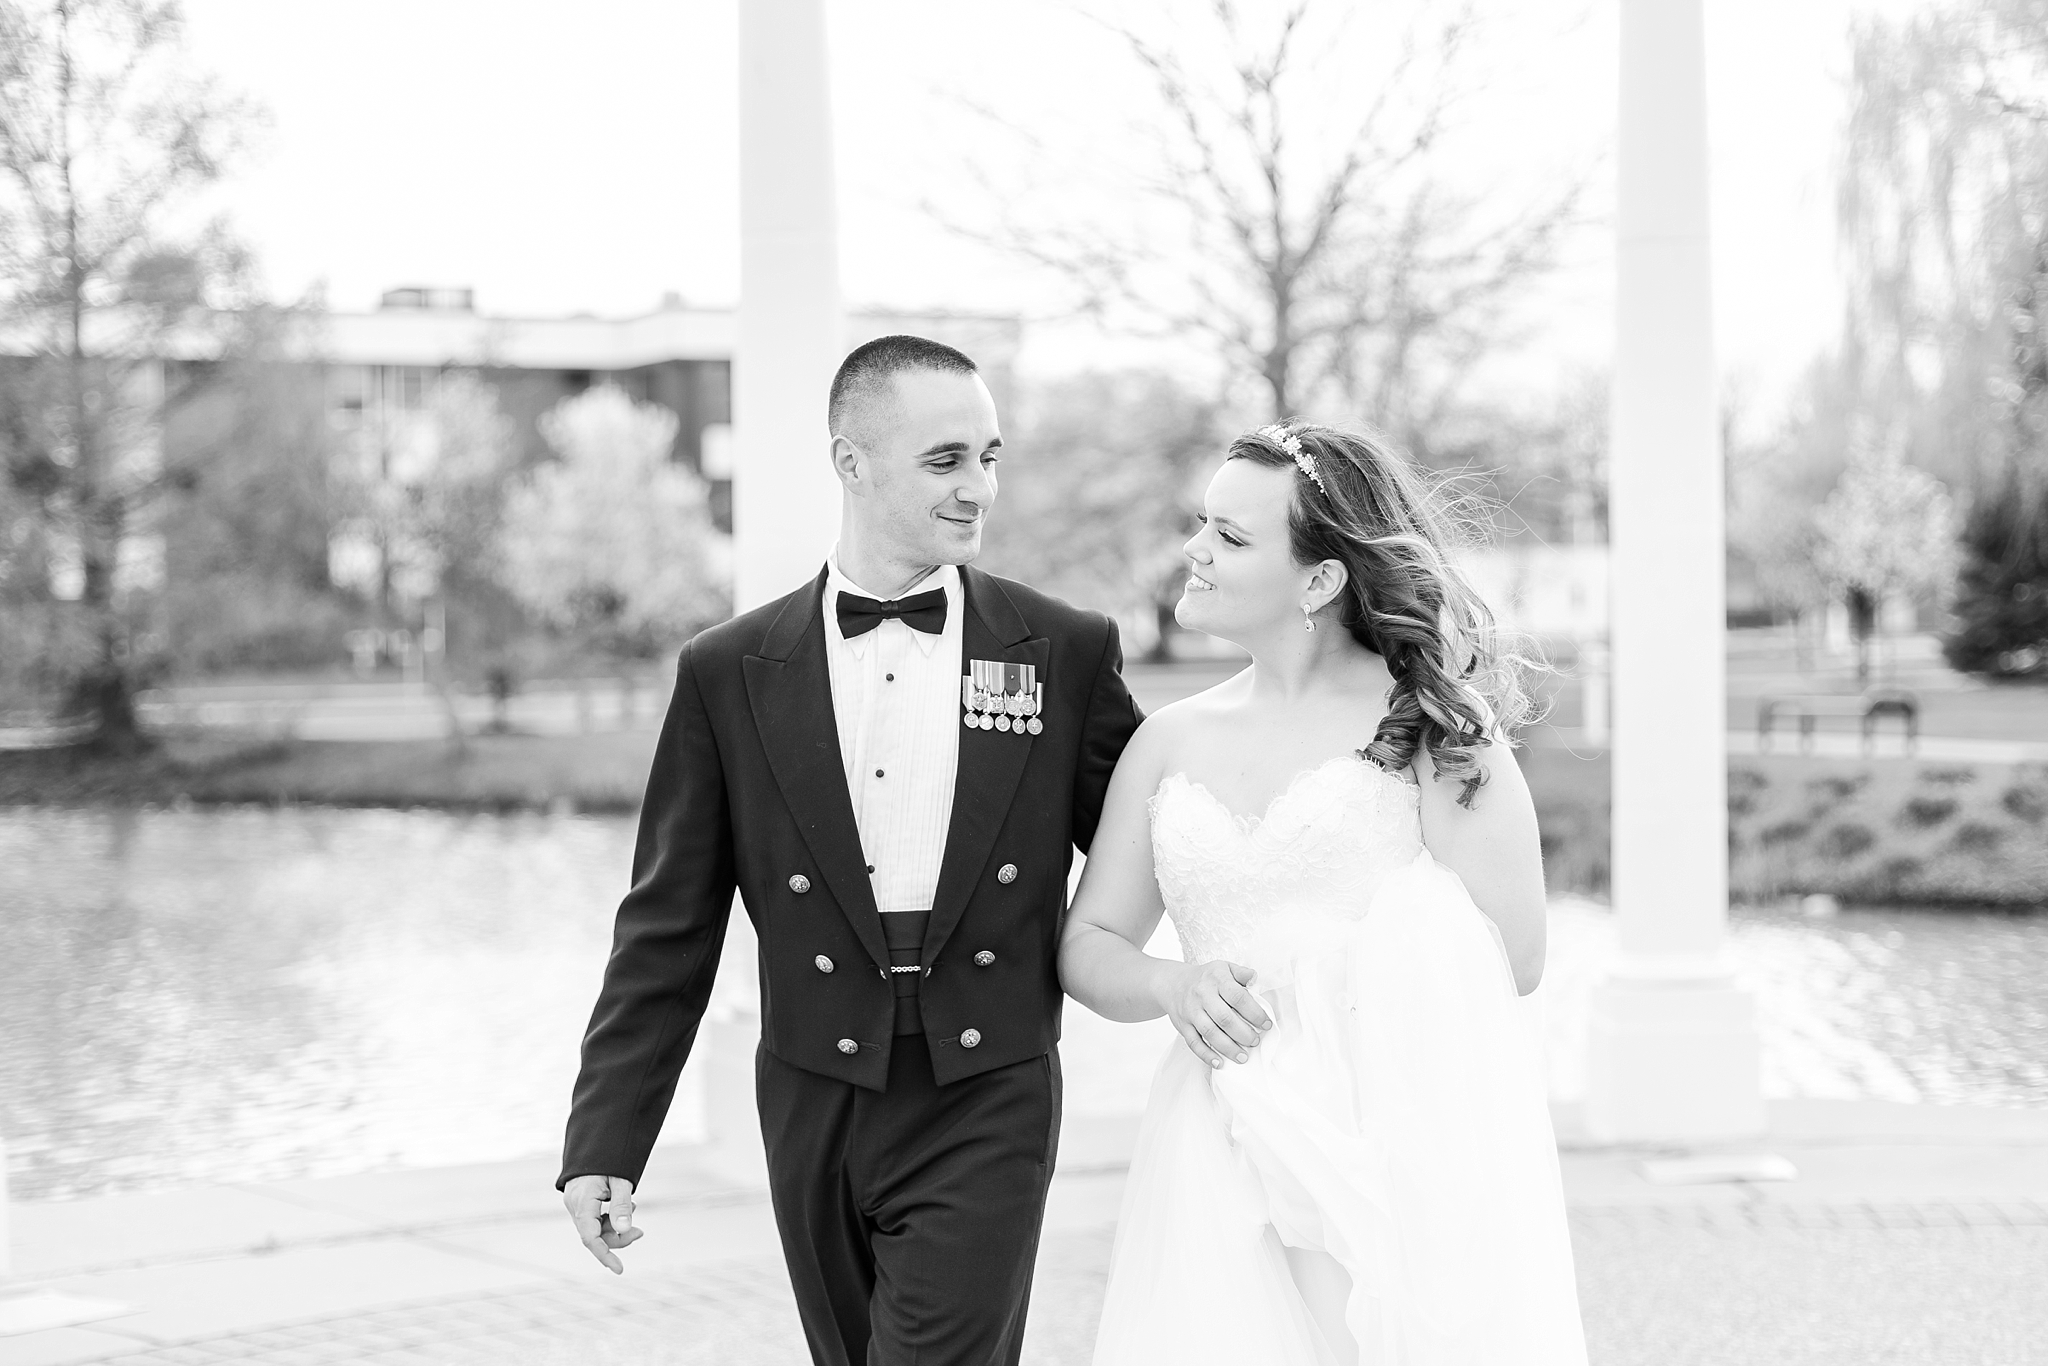 romantic-artful-candid-wedding-photos-in-st-clair-shores-at-the-white-house-wedding-chapel-by-courtney-carolyn-photography_0050.jpg